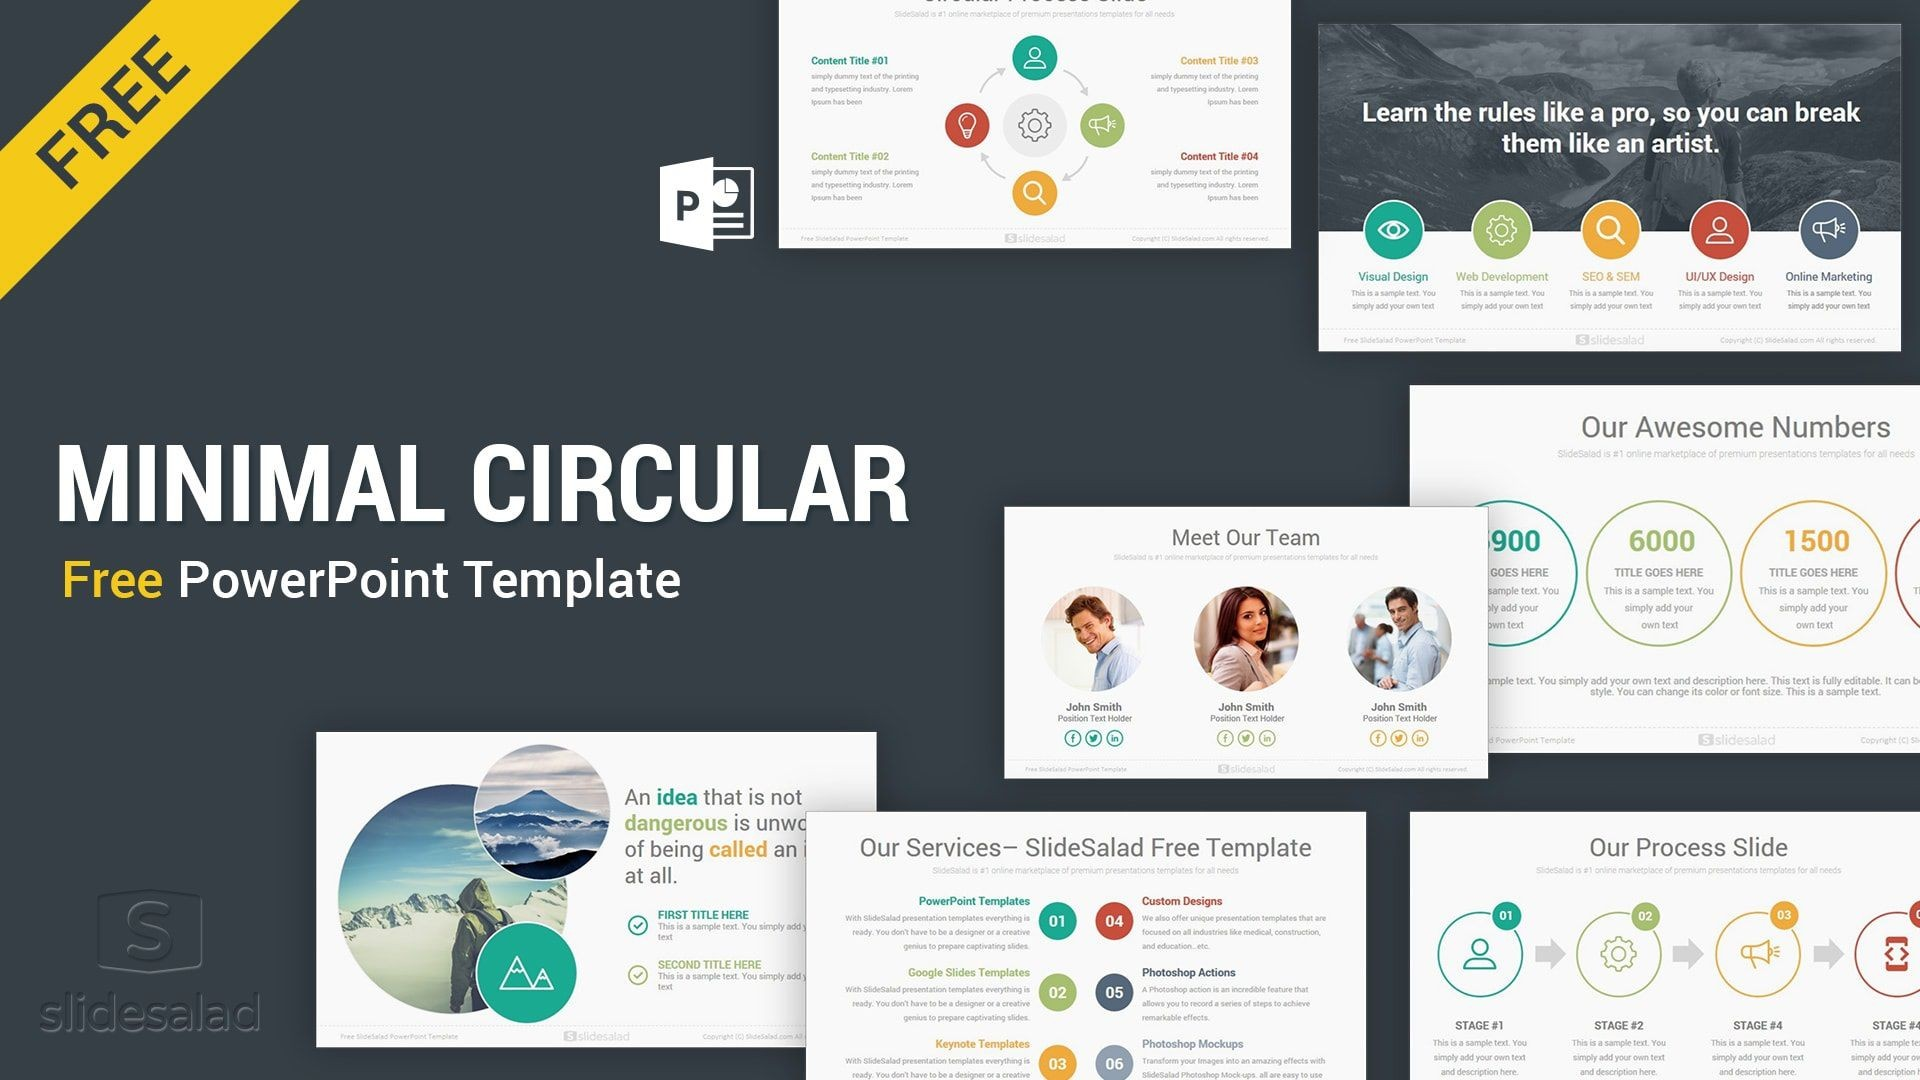 004 Awful Powerpoint Presentation Format Free Download High Resolution  Influencer Template Company Ppt Sample1920